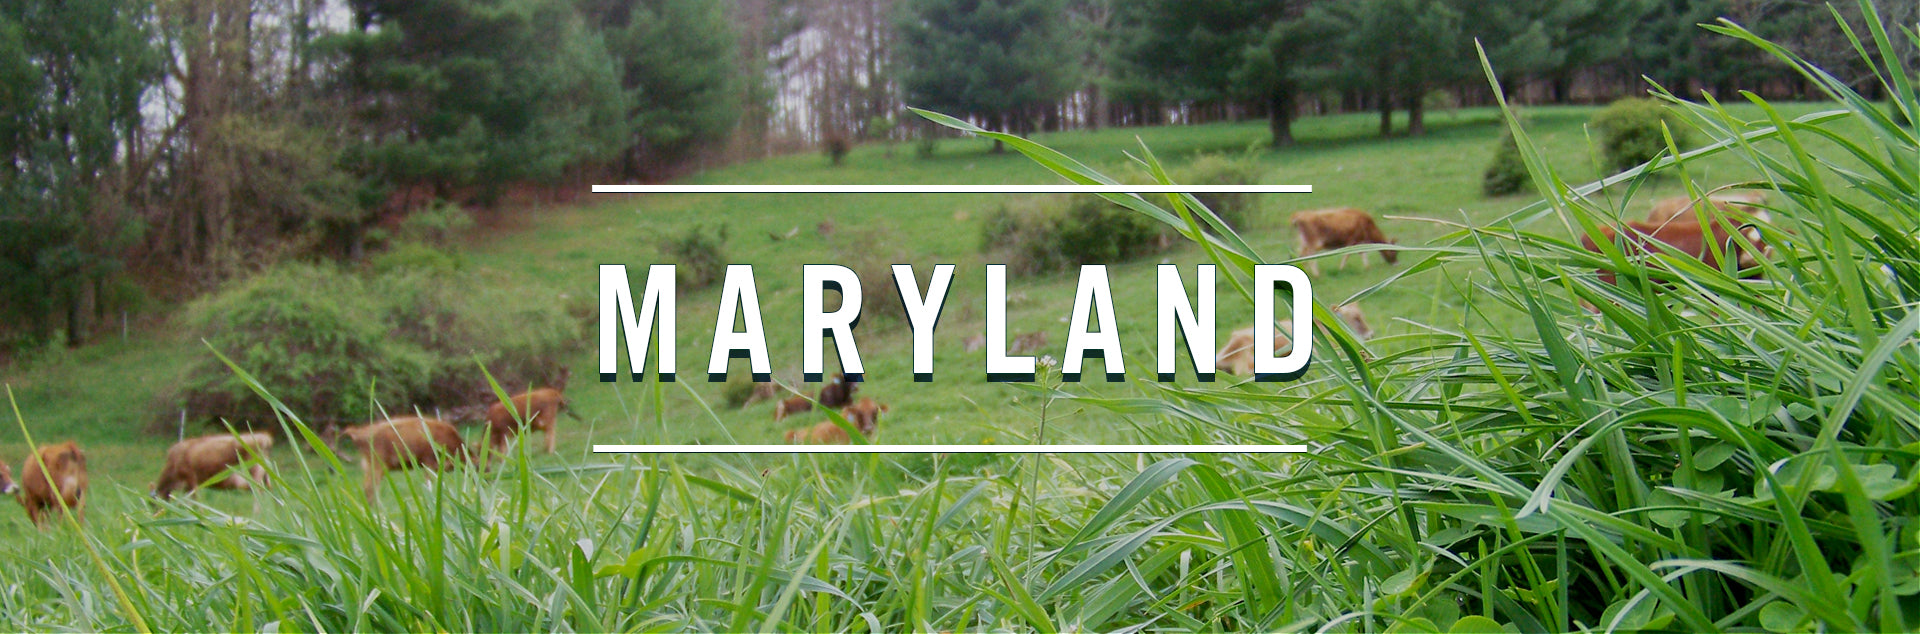 Maryland cheese making farms